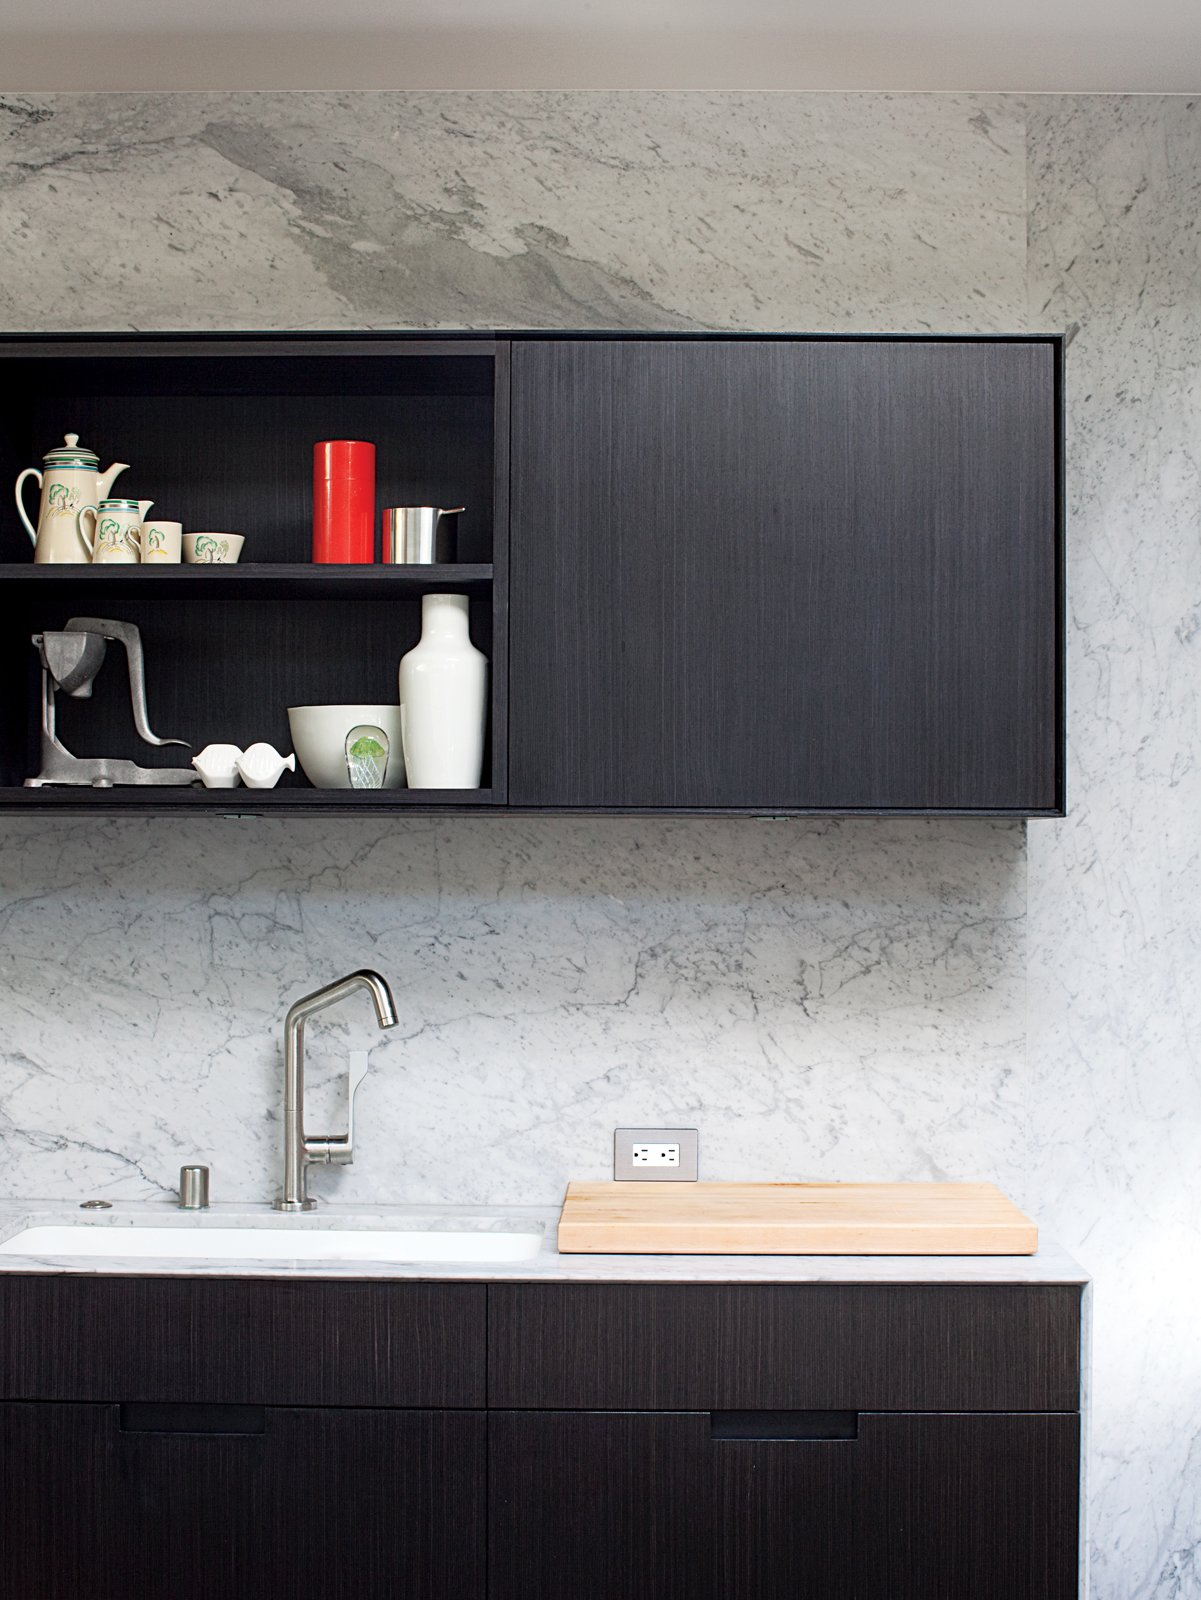 Carrera marble as covers this whole wall. The cabinets are floating which look great, but the finish on the cabinets have been tough to keep looking good!  The Deam House by Lara Deam